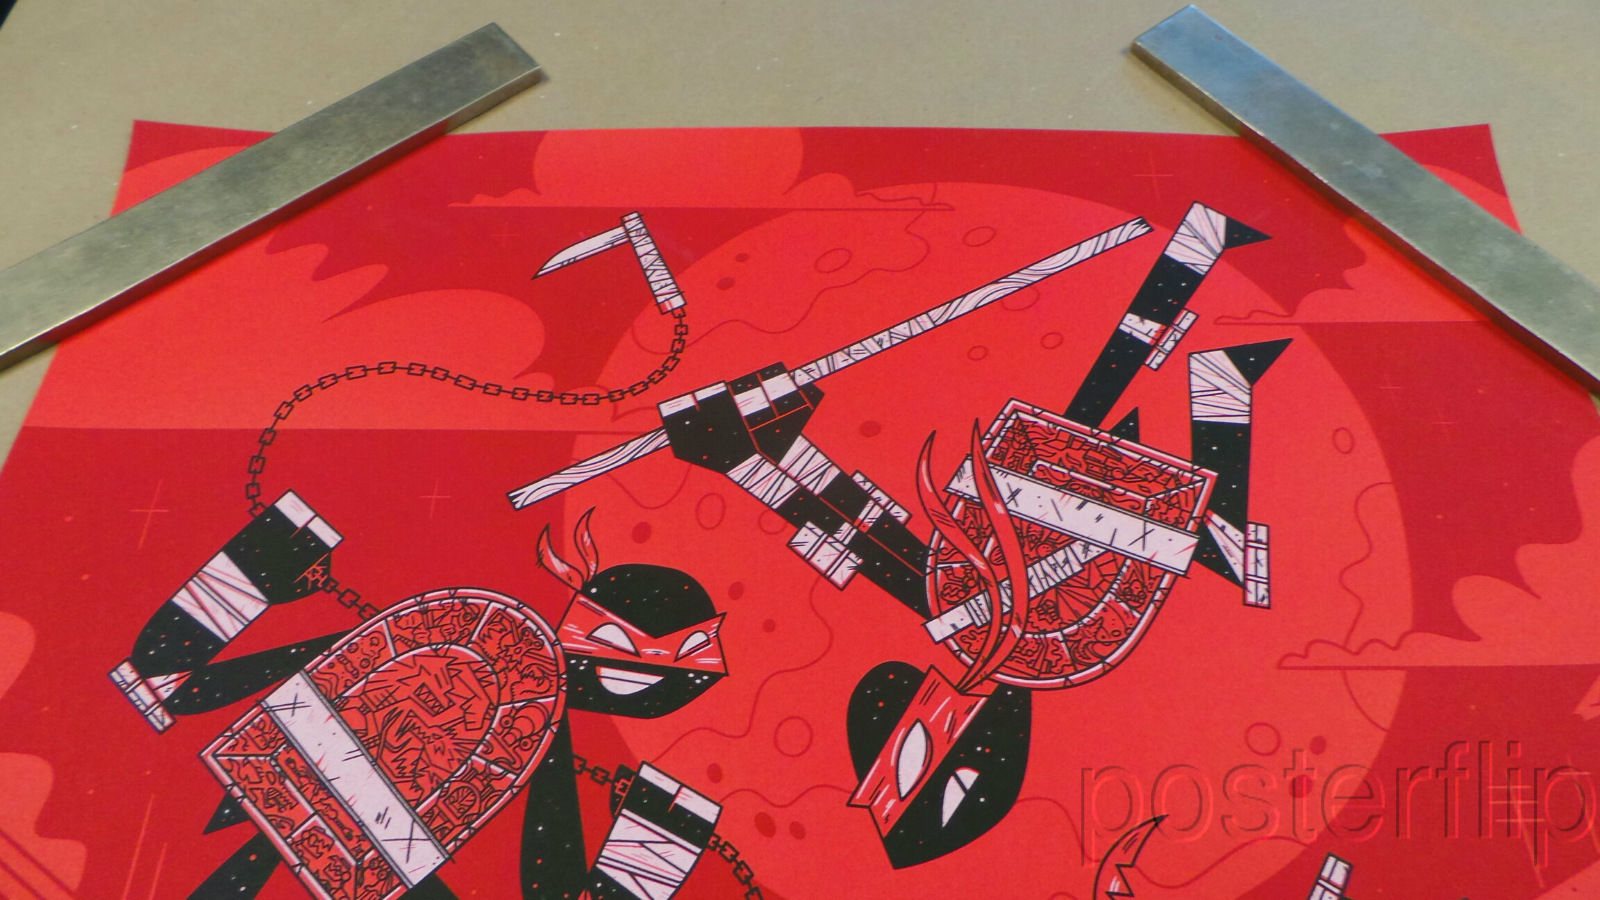 Teenage Mutant Ninja Turtles xx/175 Andrew Kolb Screen Print Poster Mondo